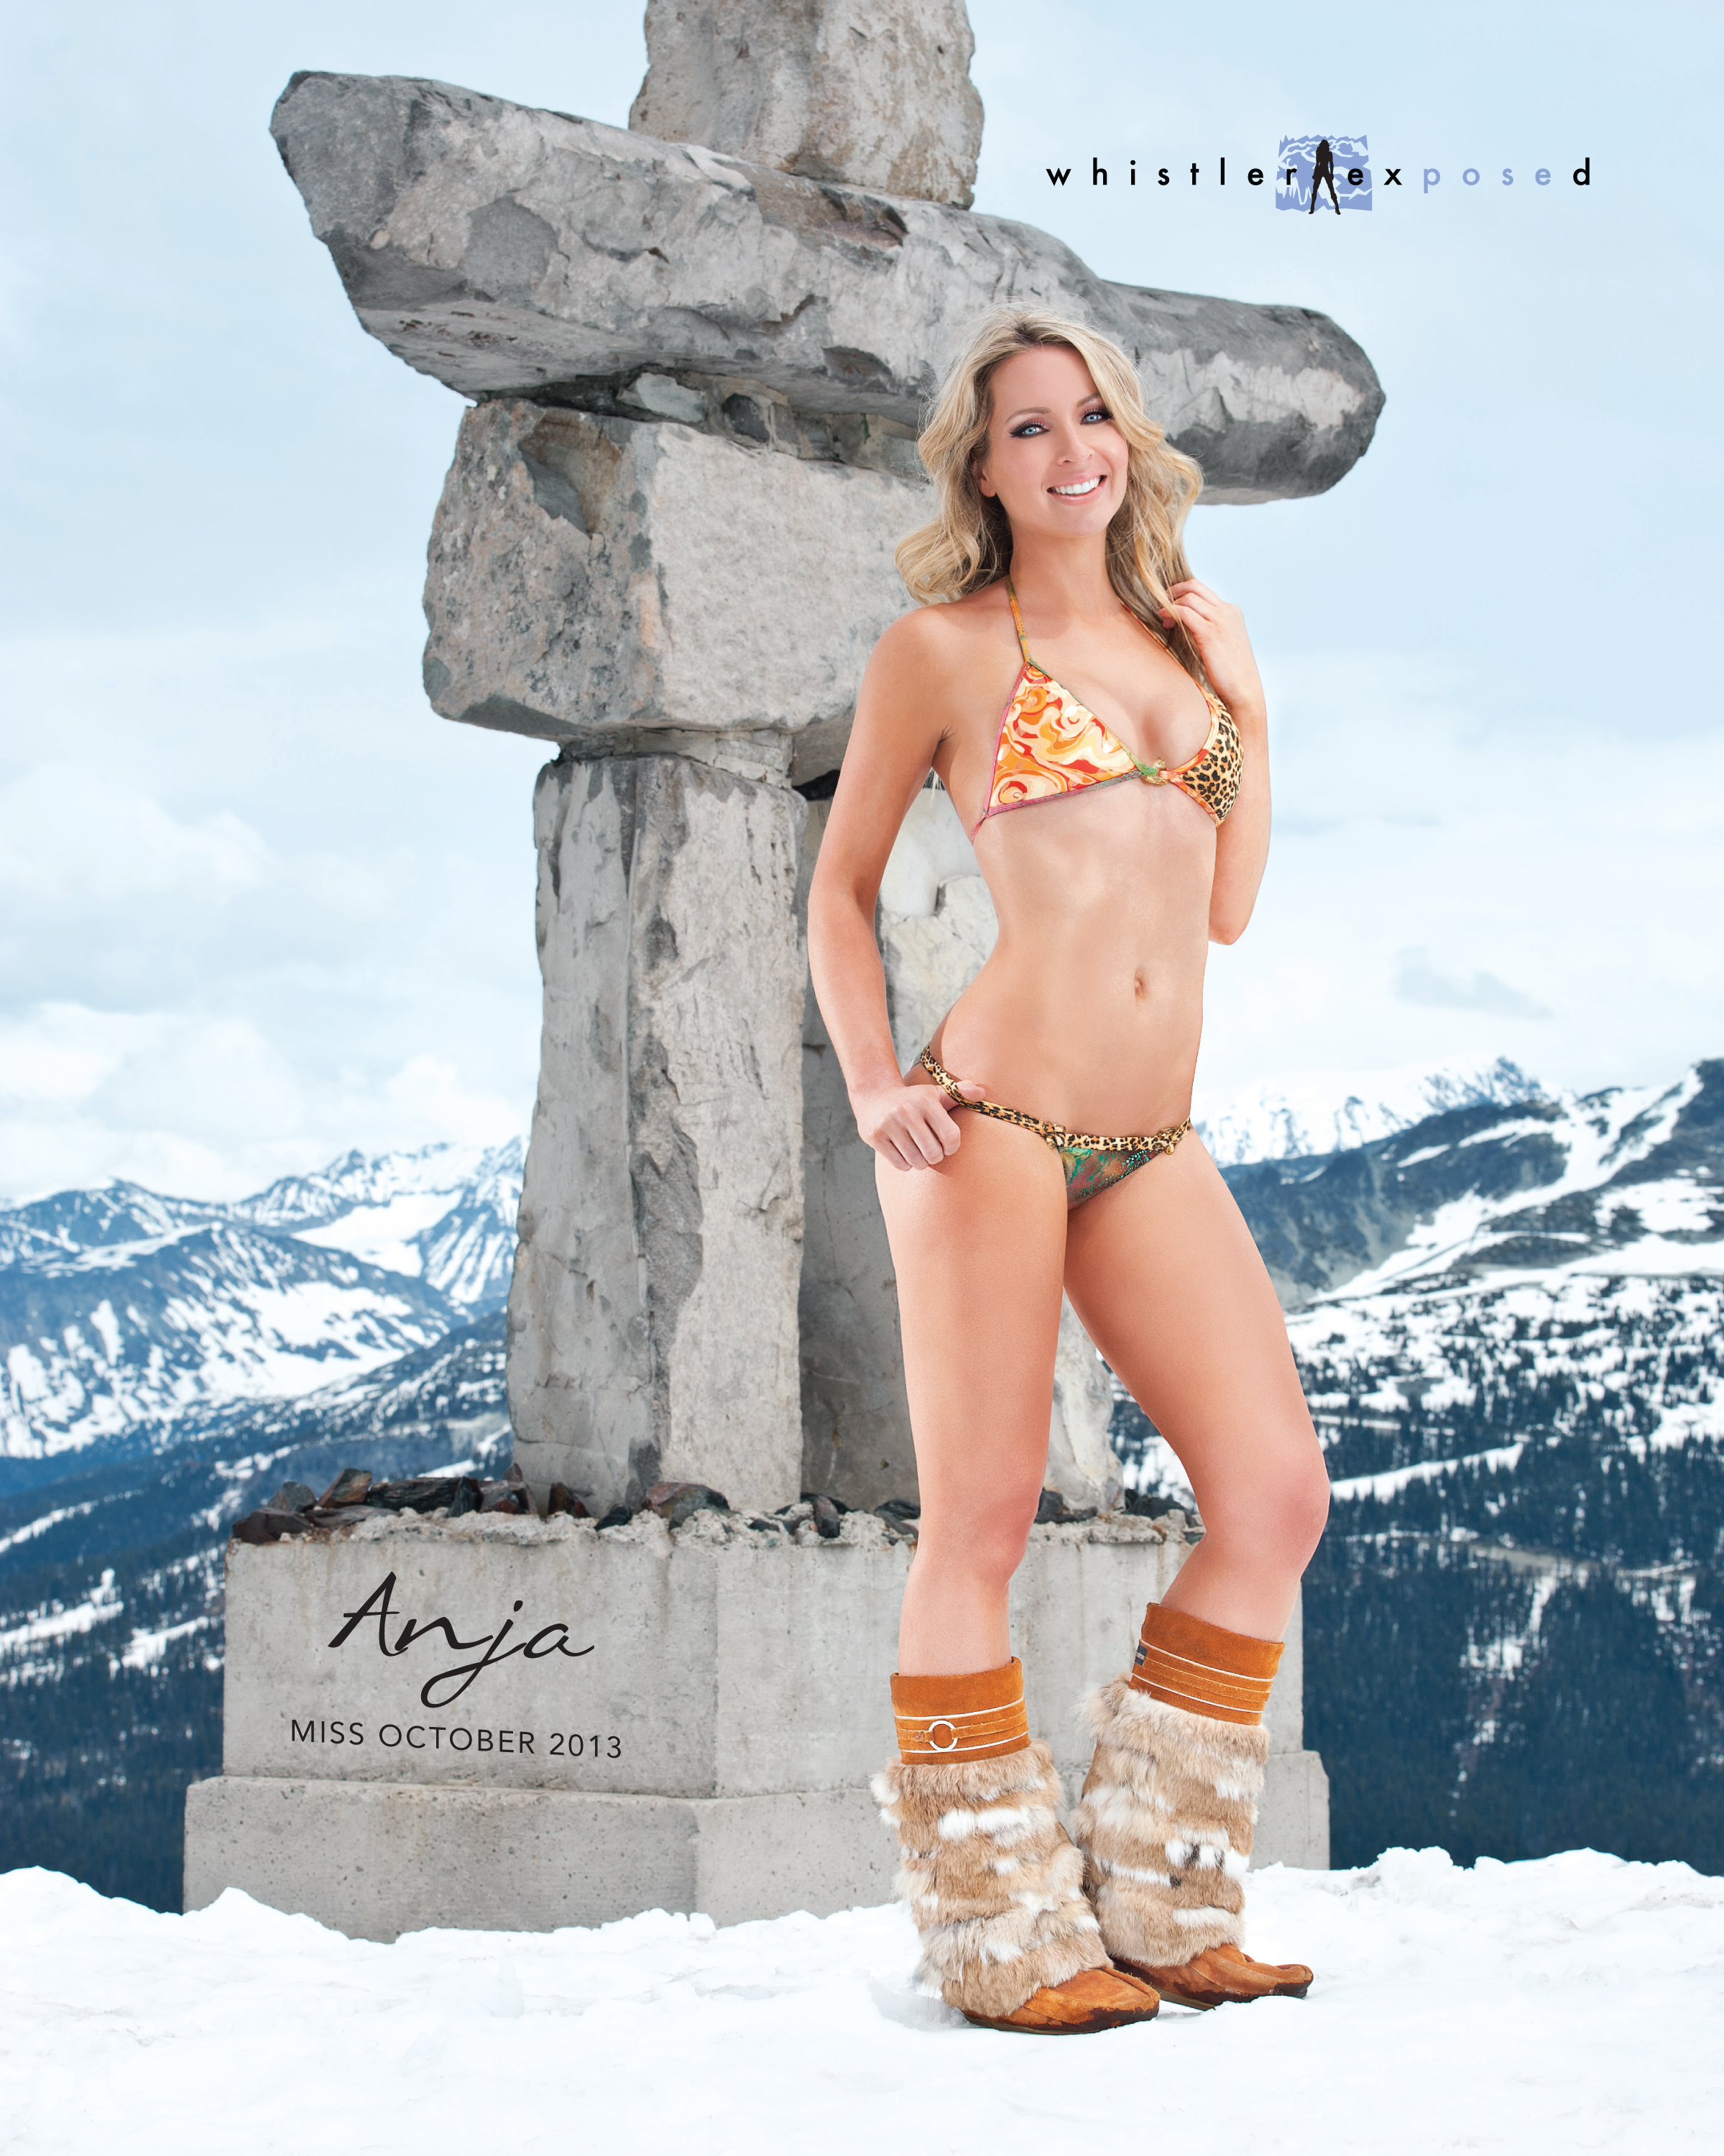 Anja - Miss October 2013 - Whistler Exposed